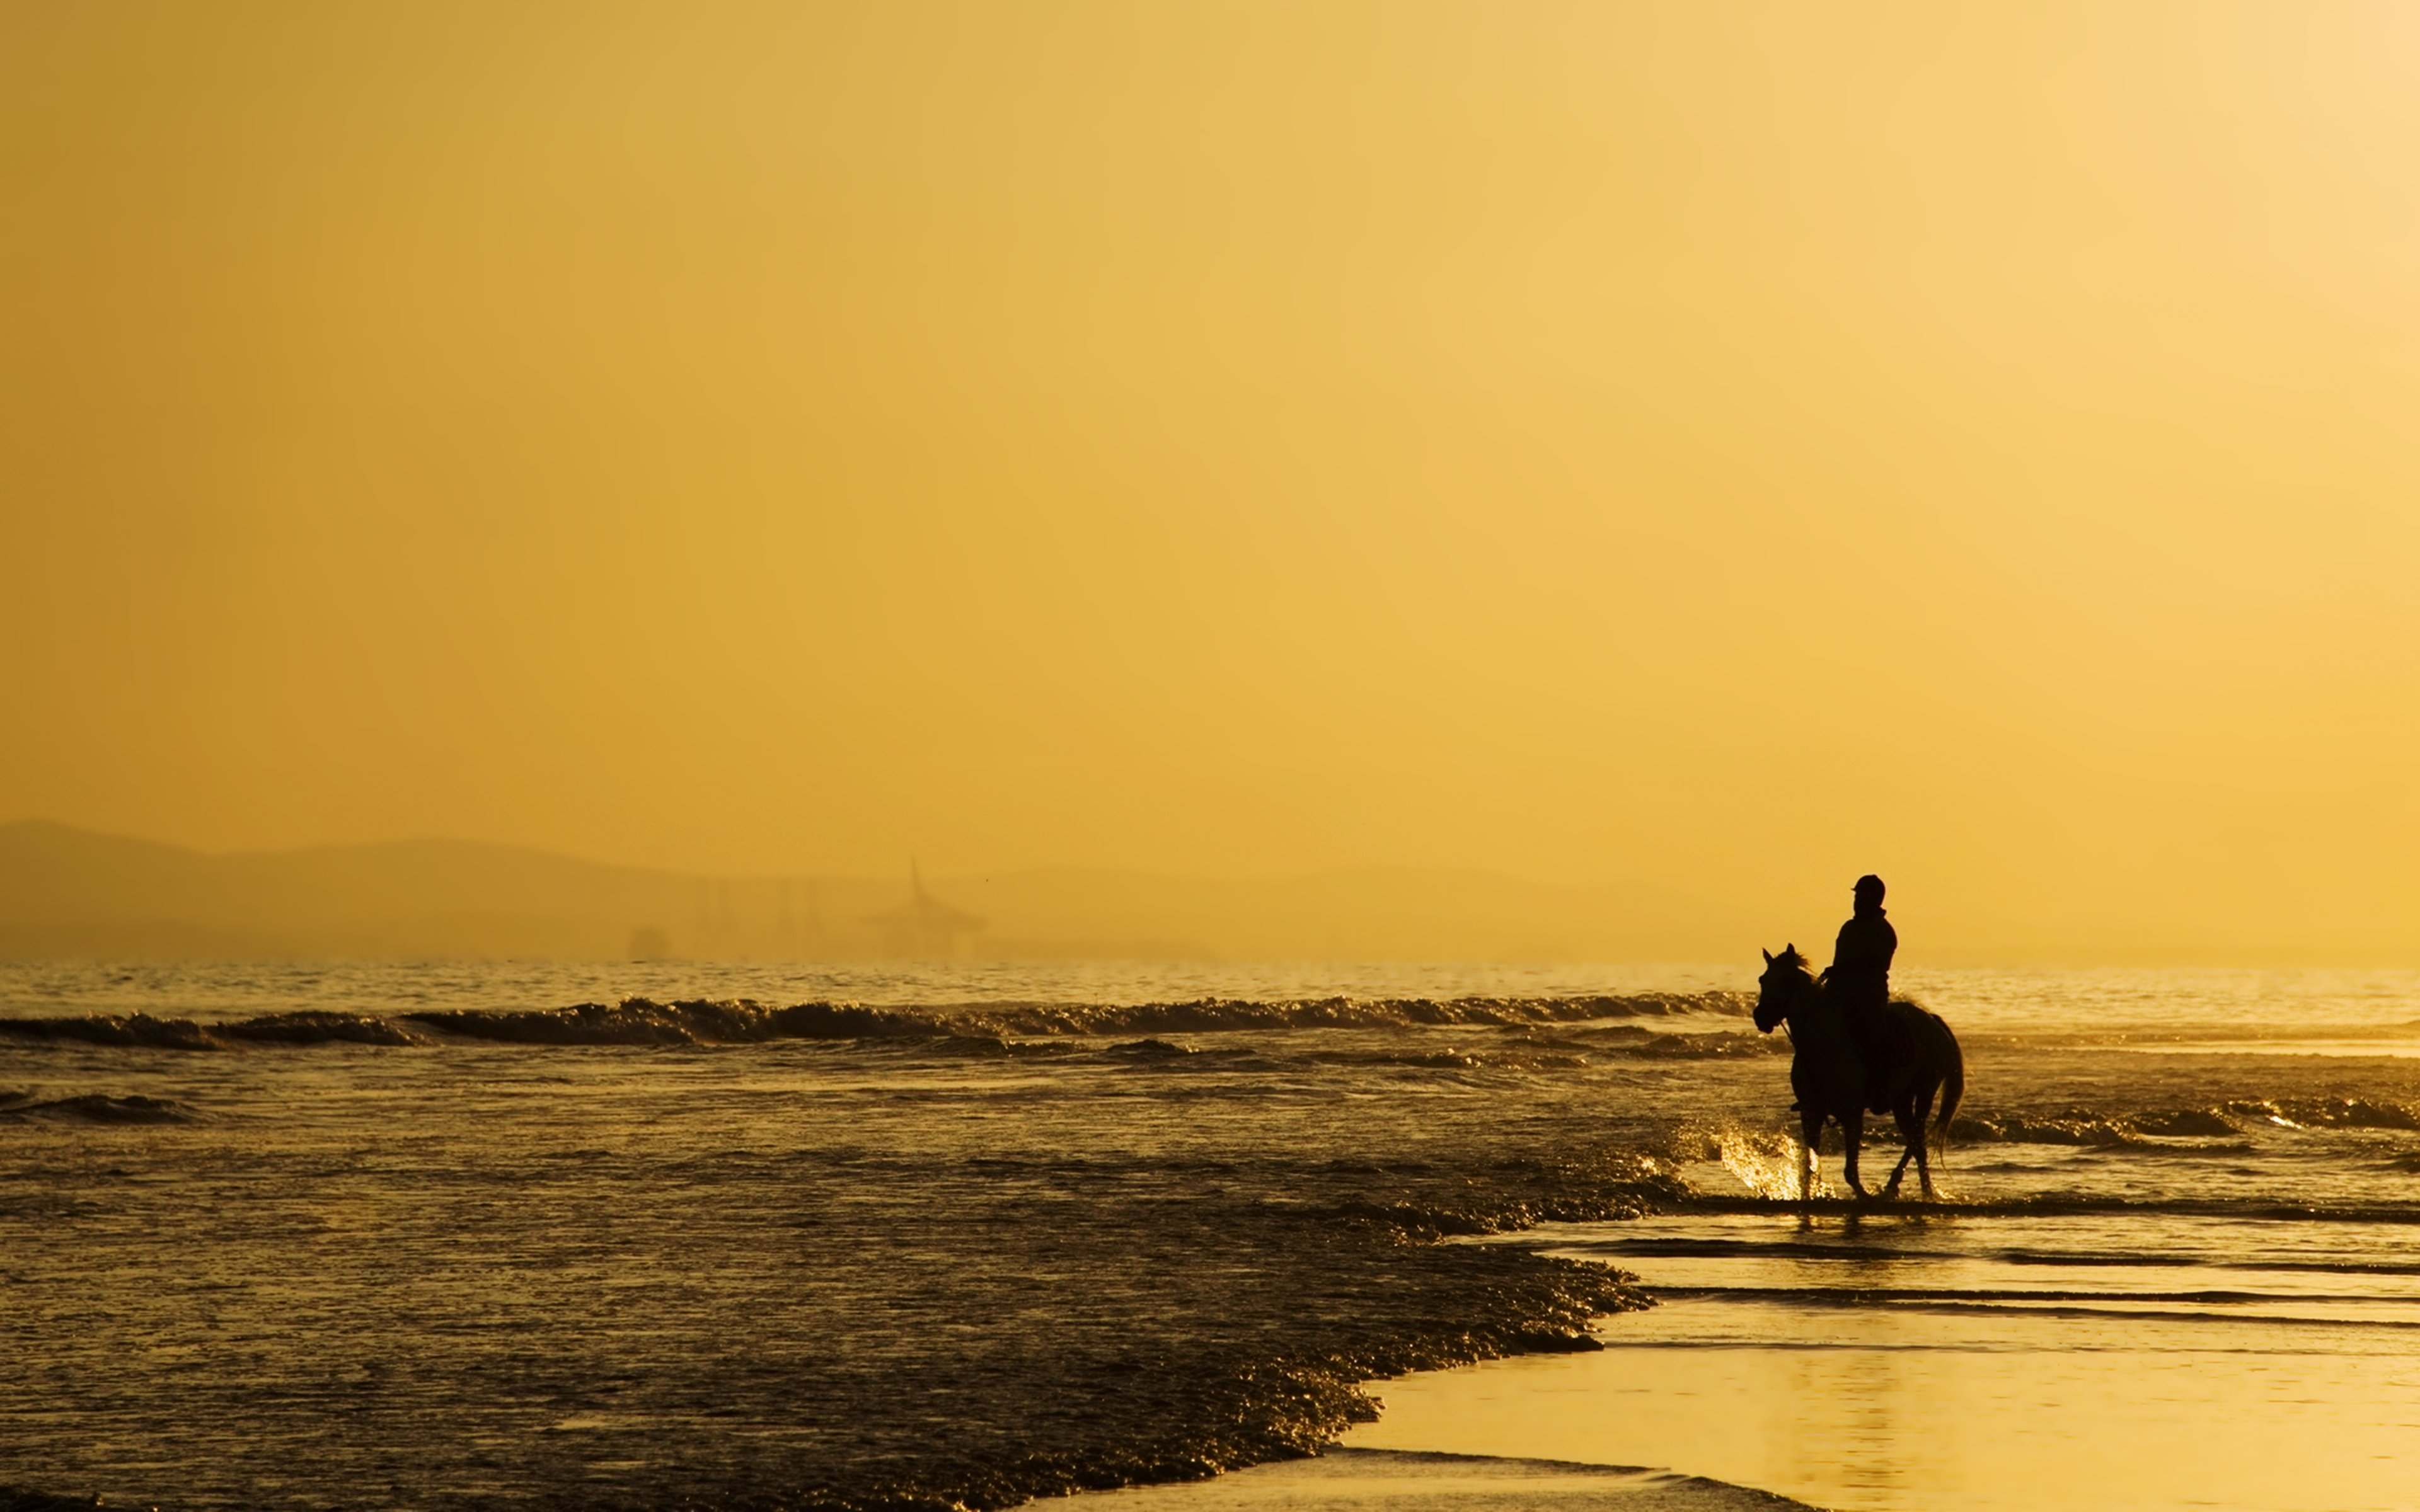 Sea Beaches Horse Sky Yellow Landscapes Nature Earth Alone